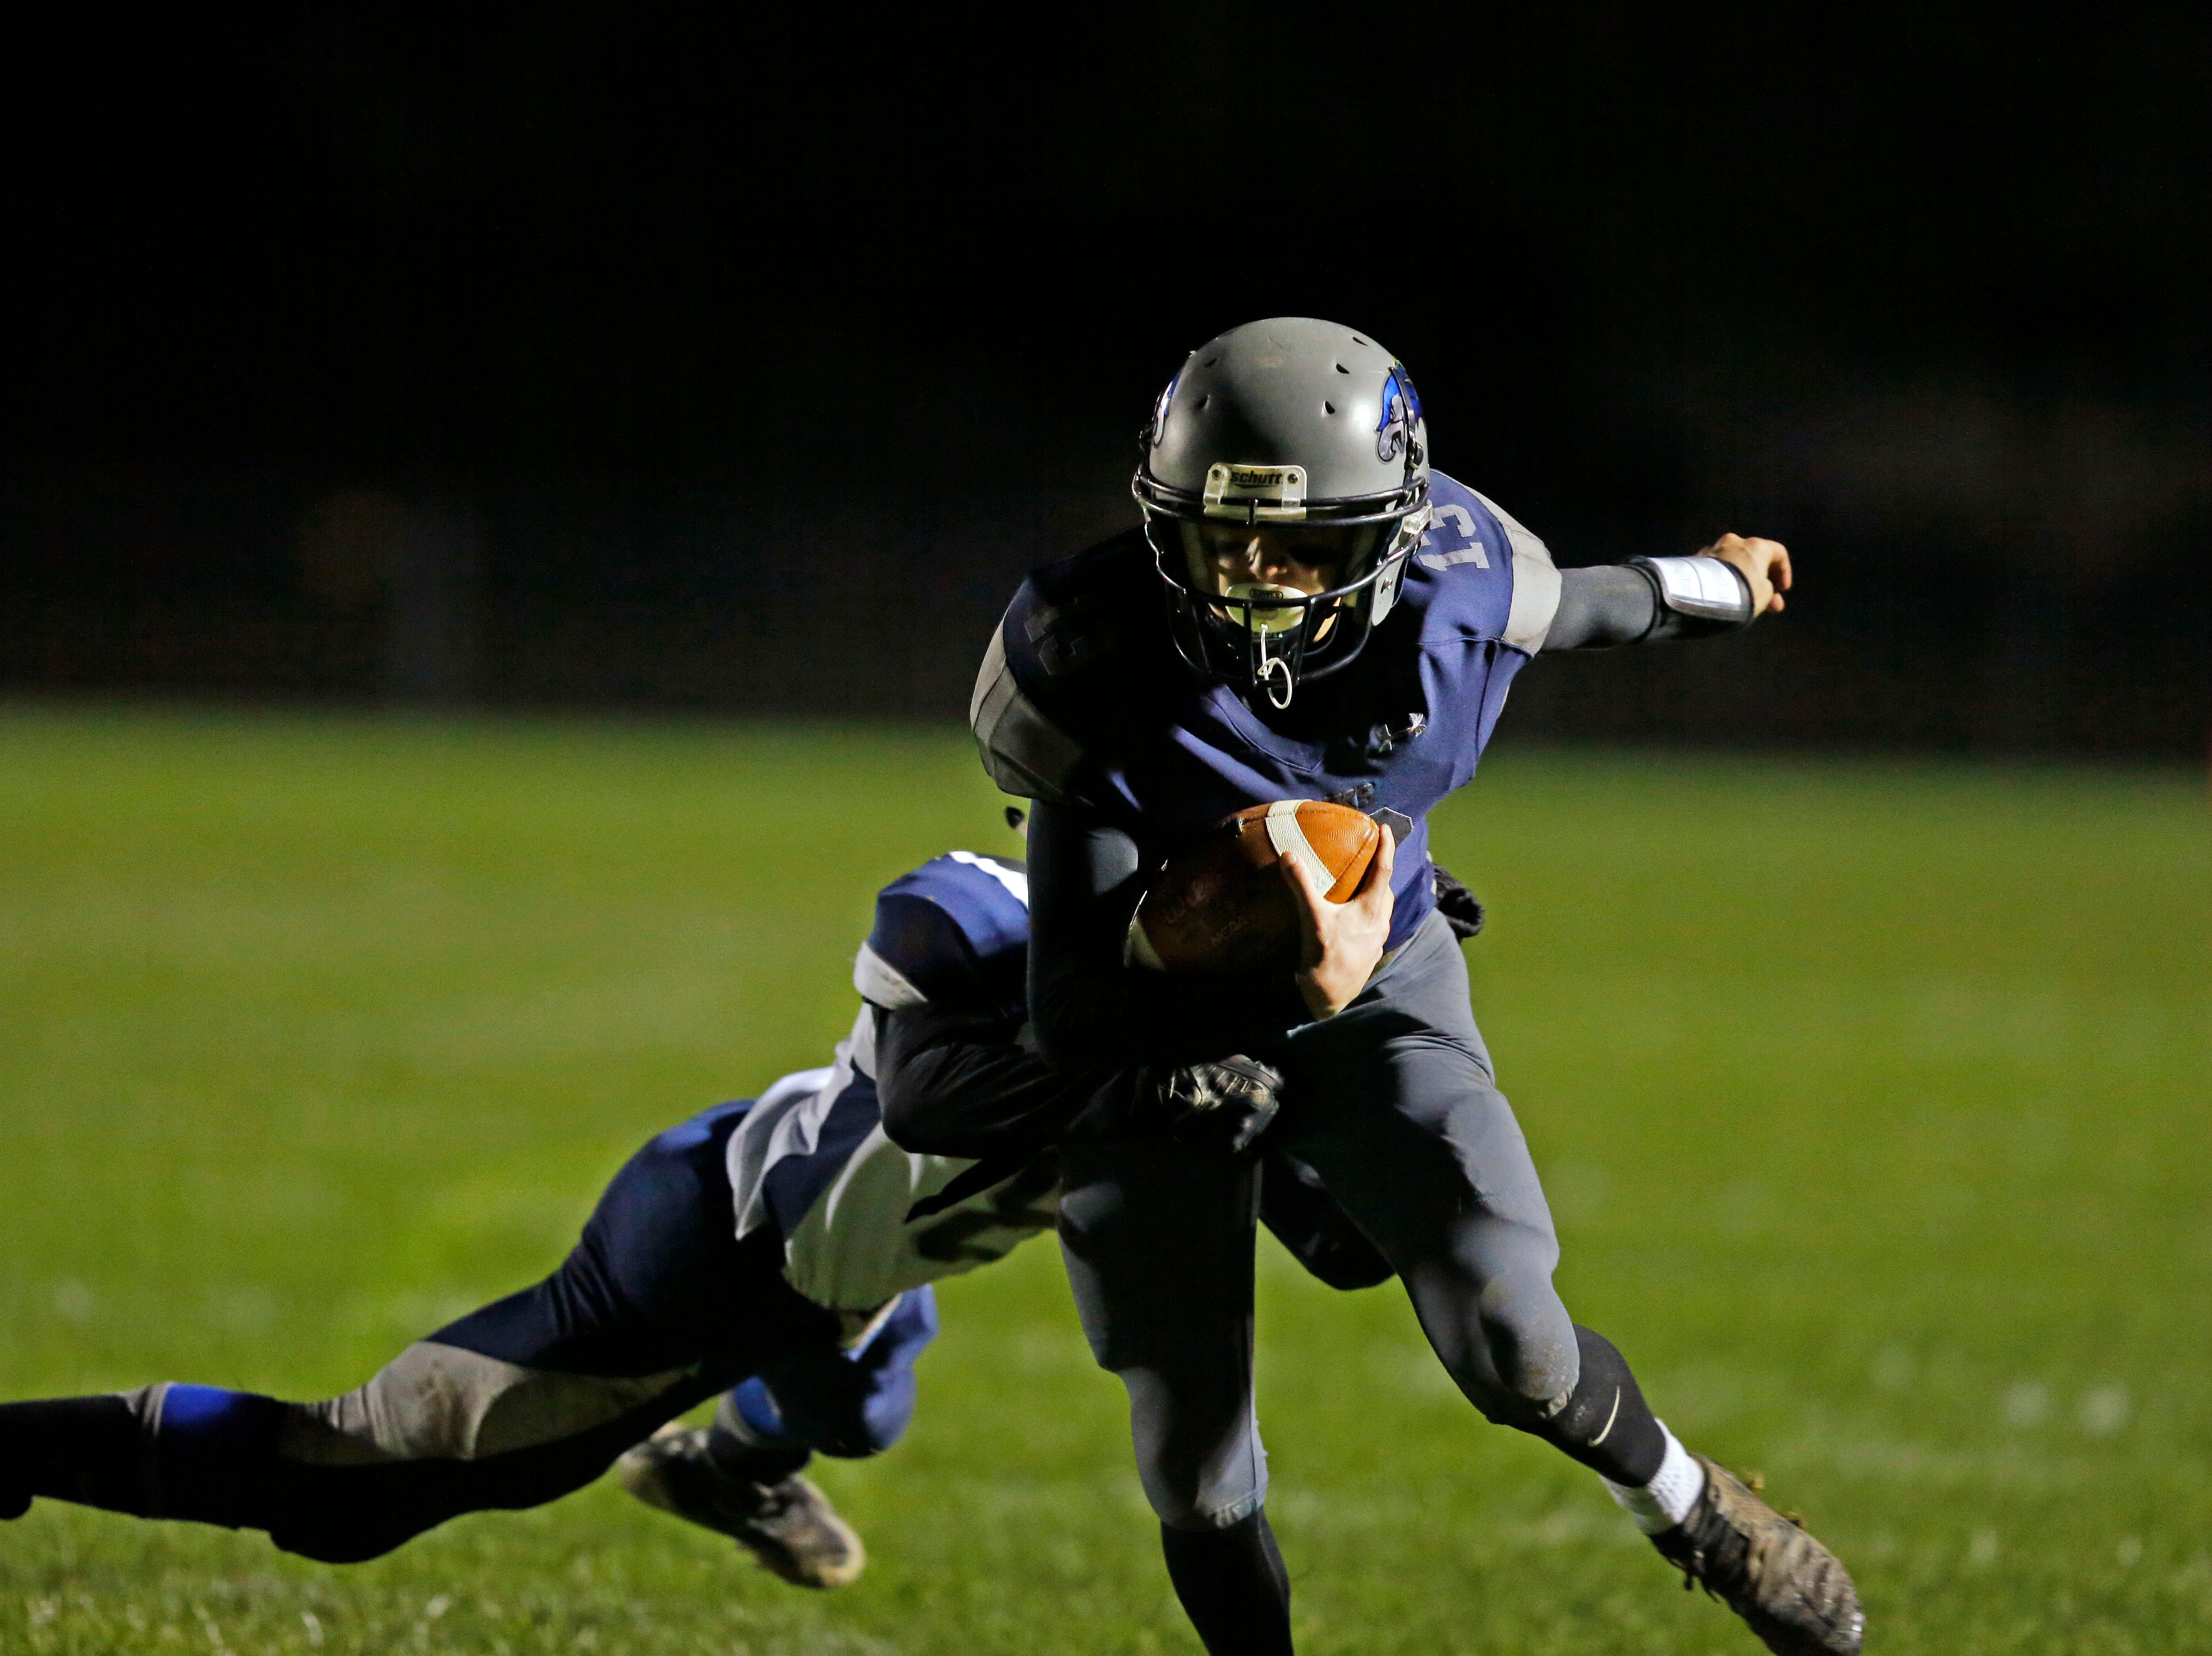 Ray Zuleger of Xavier, gets away from Terry Schmidt of Waupaca, as he runs for a touchdown in a Bay Conference football game Friday, October 12, 2018, at Rocky Bleier Field in Appleton, Wis.